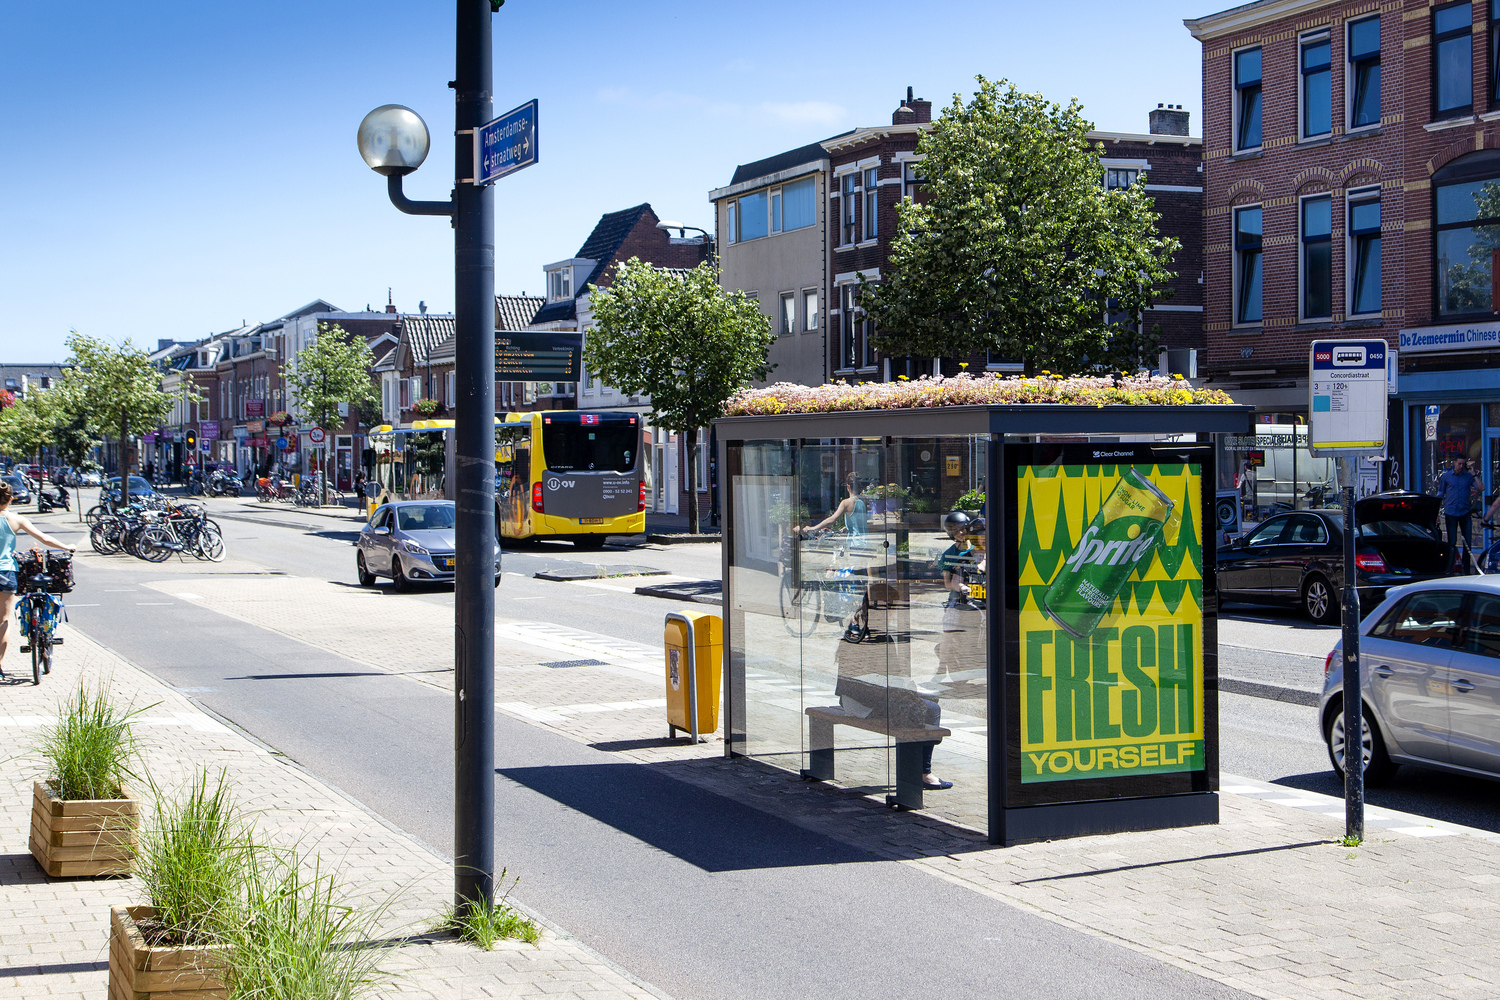 Bus stop with plants on roof